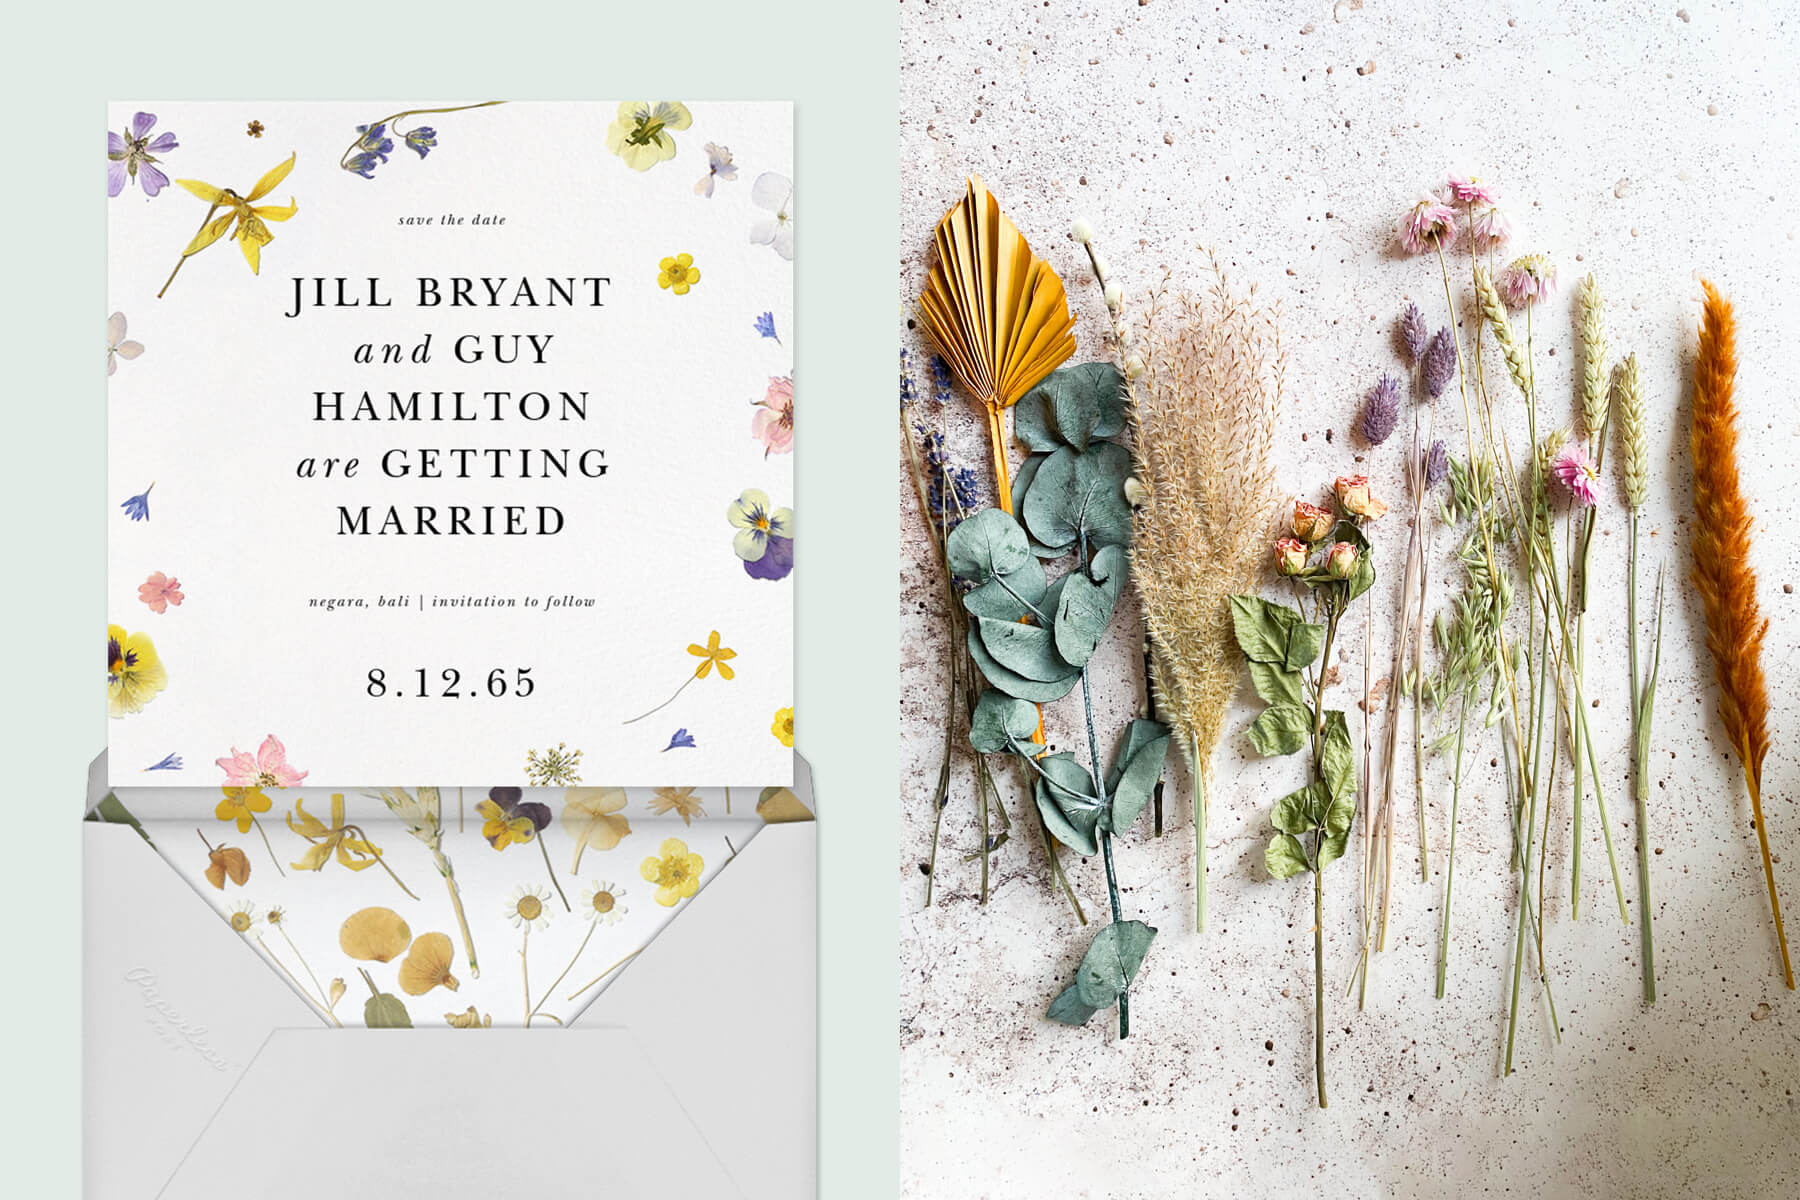 Left: Cordès wedding invitation by Paperless Post. Right: Dried wedding flowers